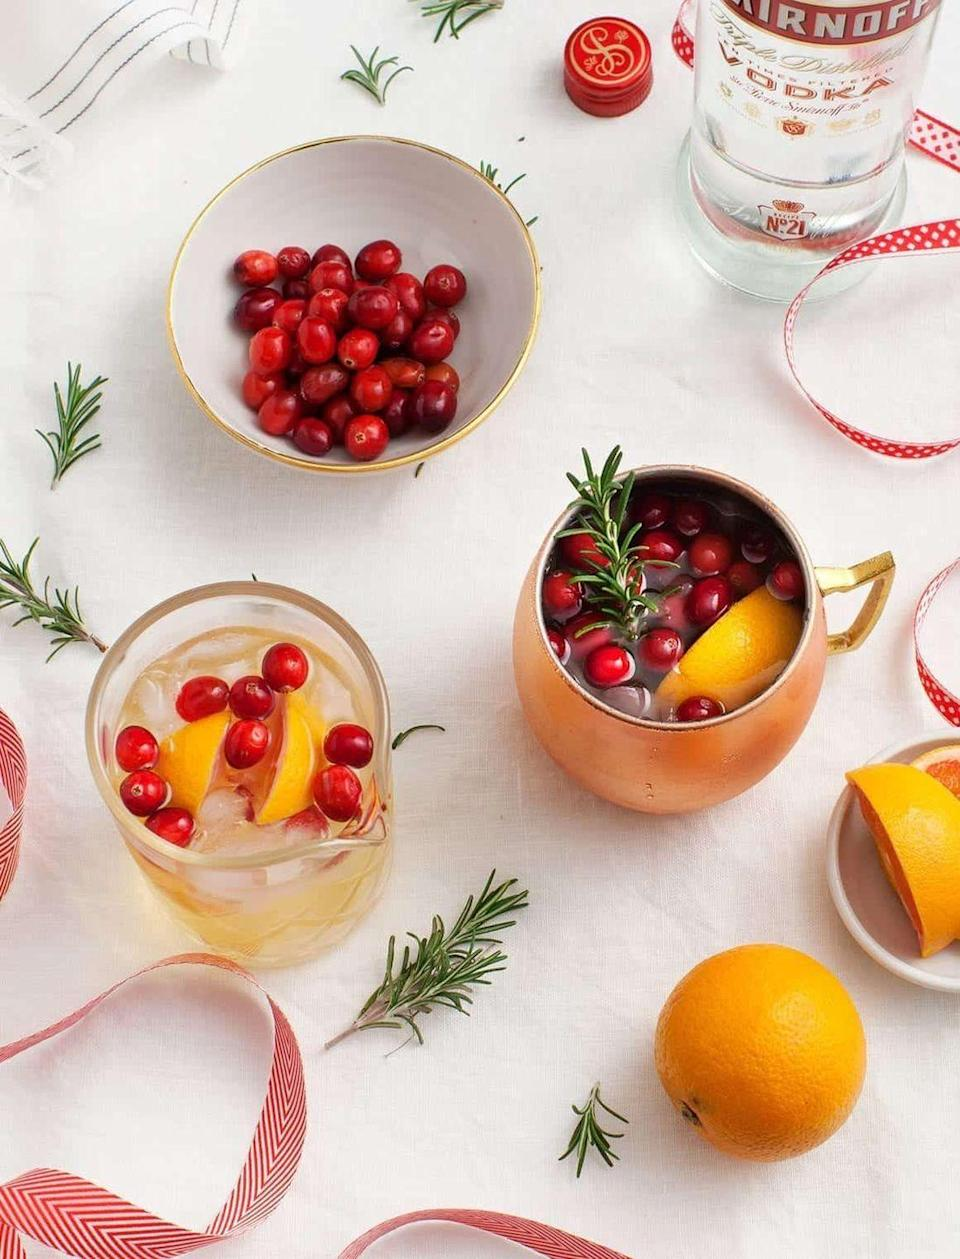 """<p>Instead of ginger beer, the main ingredient in this fun and festive spin on the traditional Moscow Mule (besides vodka) is ginger kombucha. </p><p><em>Get the recipe at <a href=""""https://www.loveandlemons.com/winter-spiced-moscow-mule/"""" rel=""""nofollow noopener"""" target=""""_blank"""" data-ylk=""""slk:Love and Lemons"""" class=""""link rapid-noclick-resp"""">Love and Lemons</a>. </em></p>"""